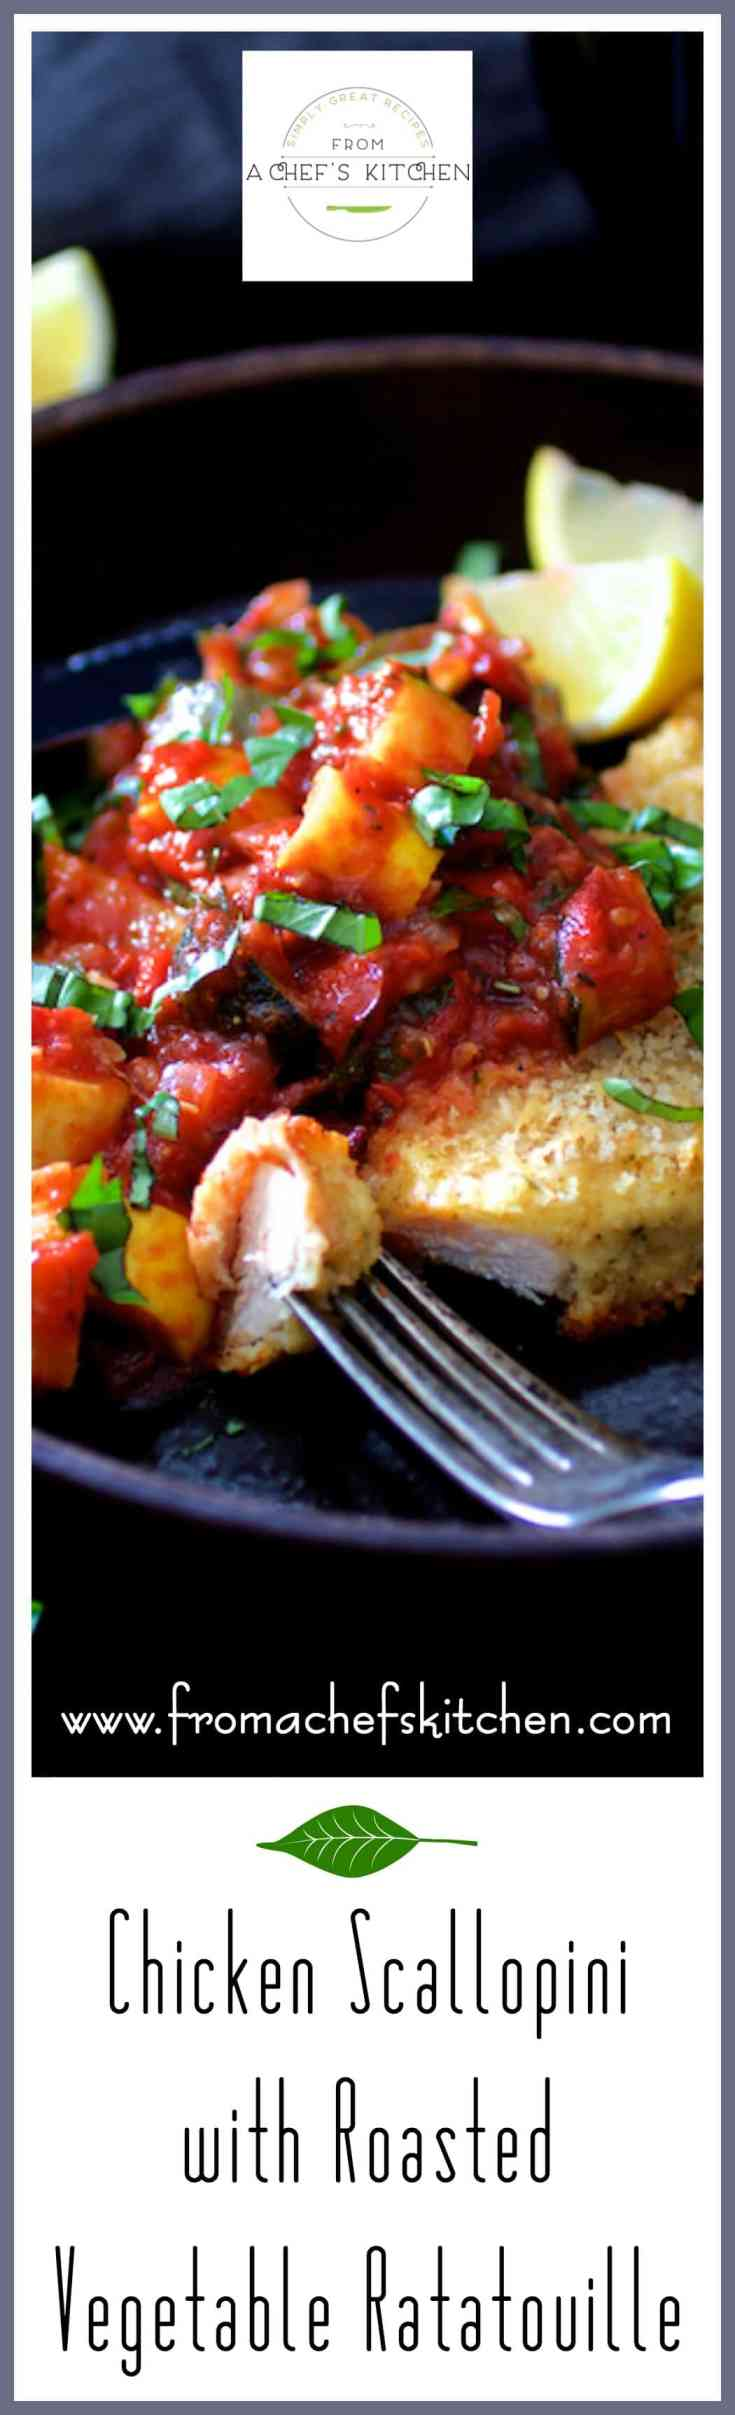 Chicken Scallopini with Roasted Vegetable Ratatouille is a twist on Italian Chicken Parmigiana and classic French Ratatouille! #chicken #poultry #vegetable #ratatouille #Italian #French #chickenscallopini